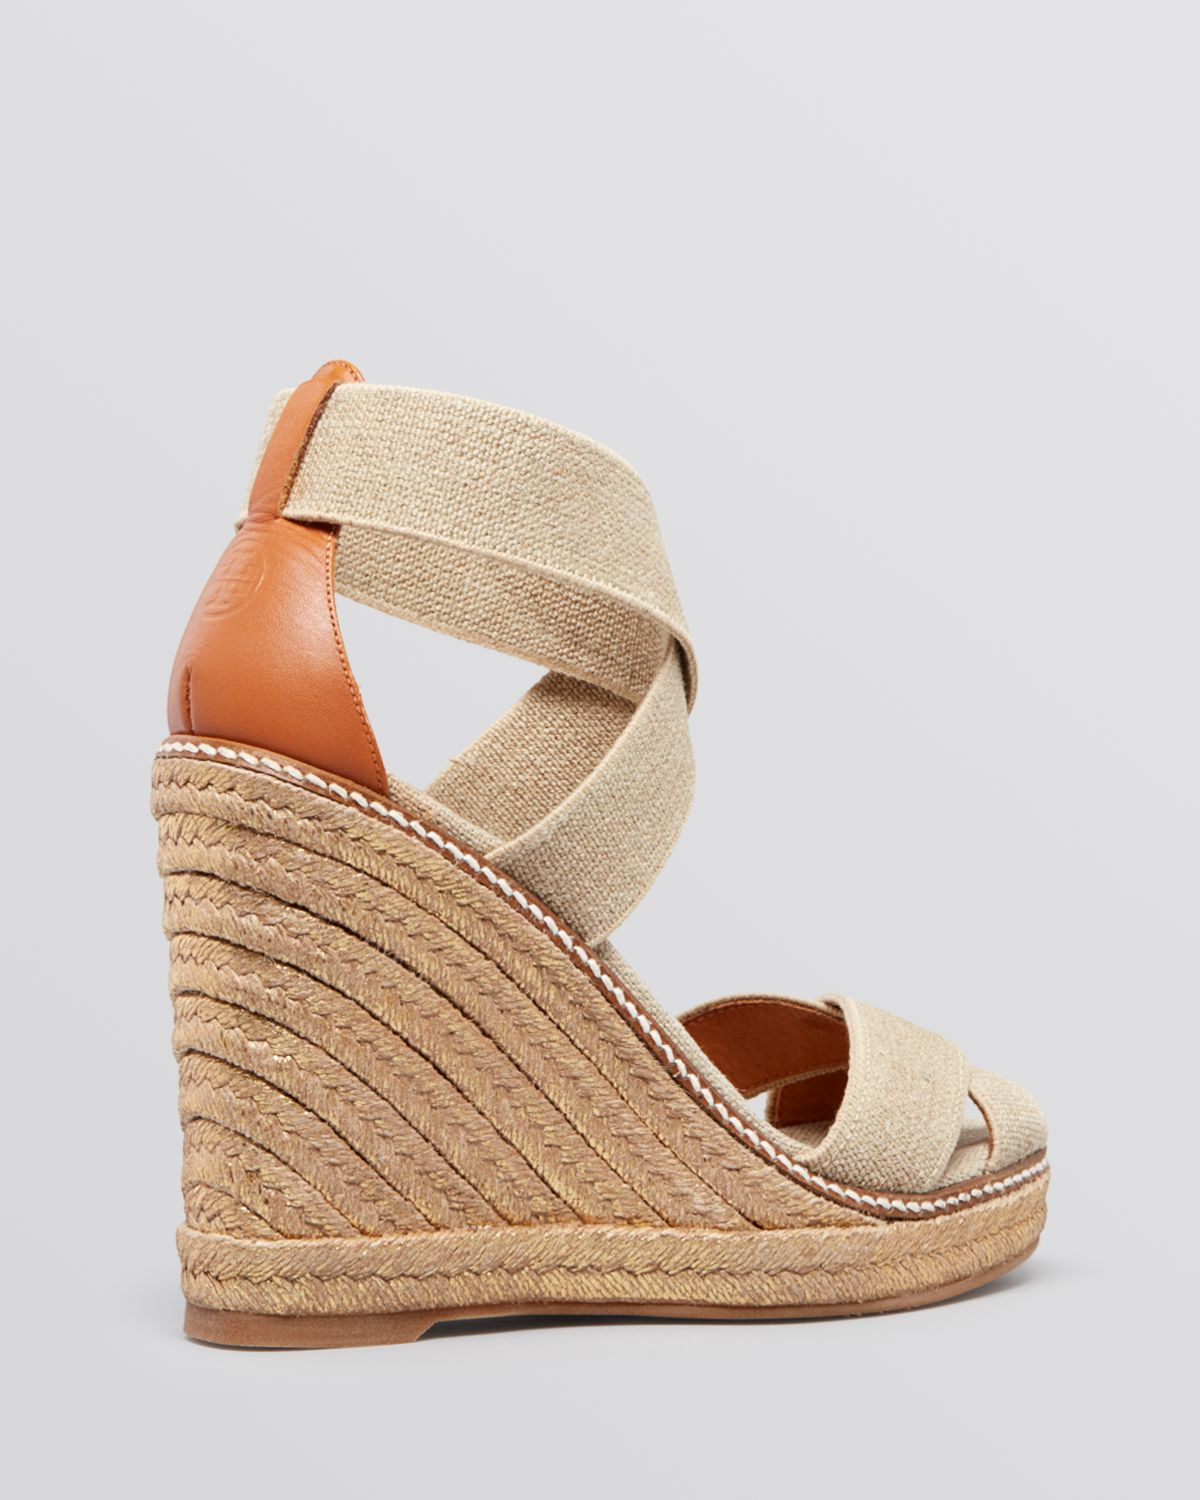 076ff35d8c Tory Burch Platform Wedge Espadrille Sandals Adonis in Natural - Lyst